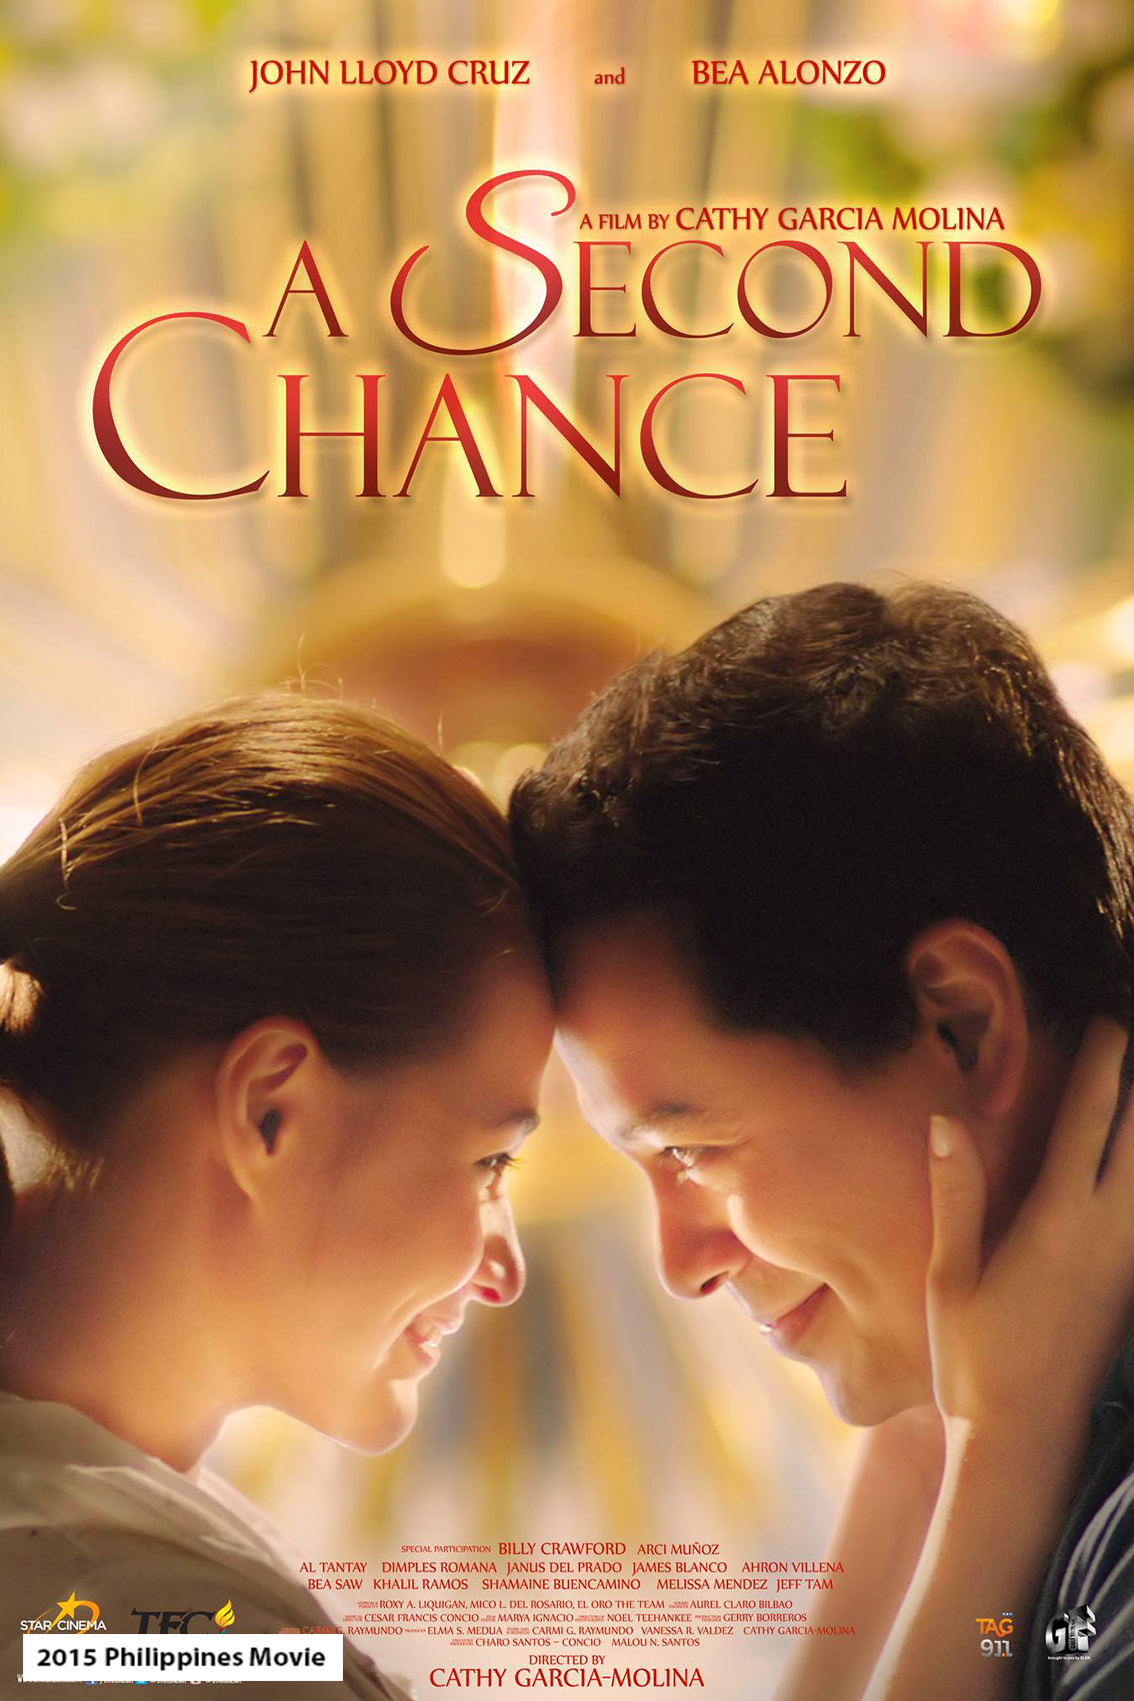 A Second Chance [2015 Philippines Movie]